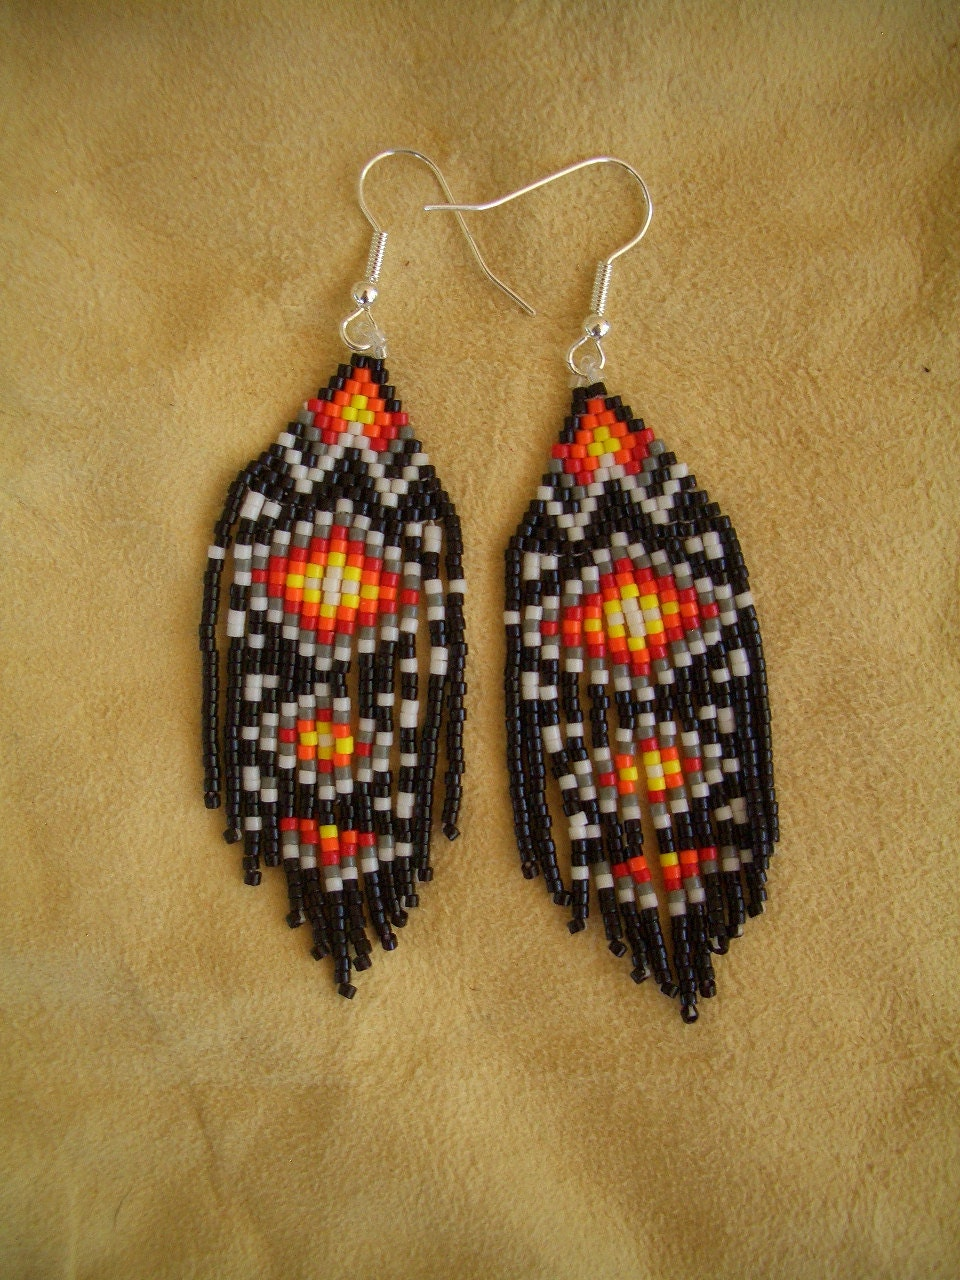 designer product earrings beaded beads thumb glass pic